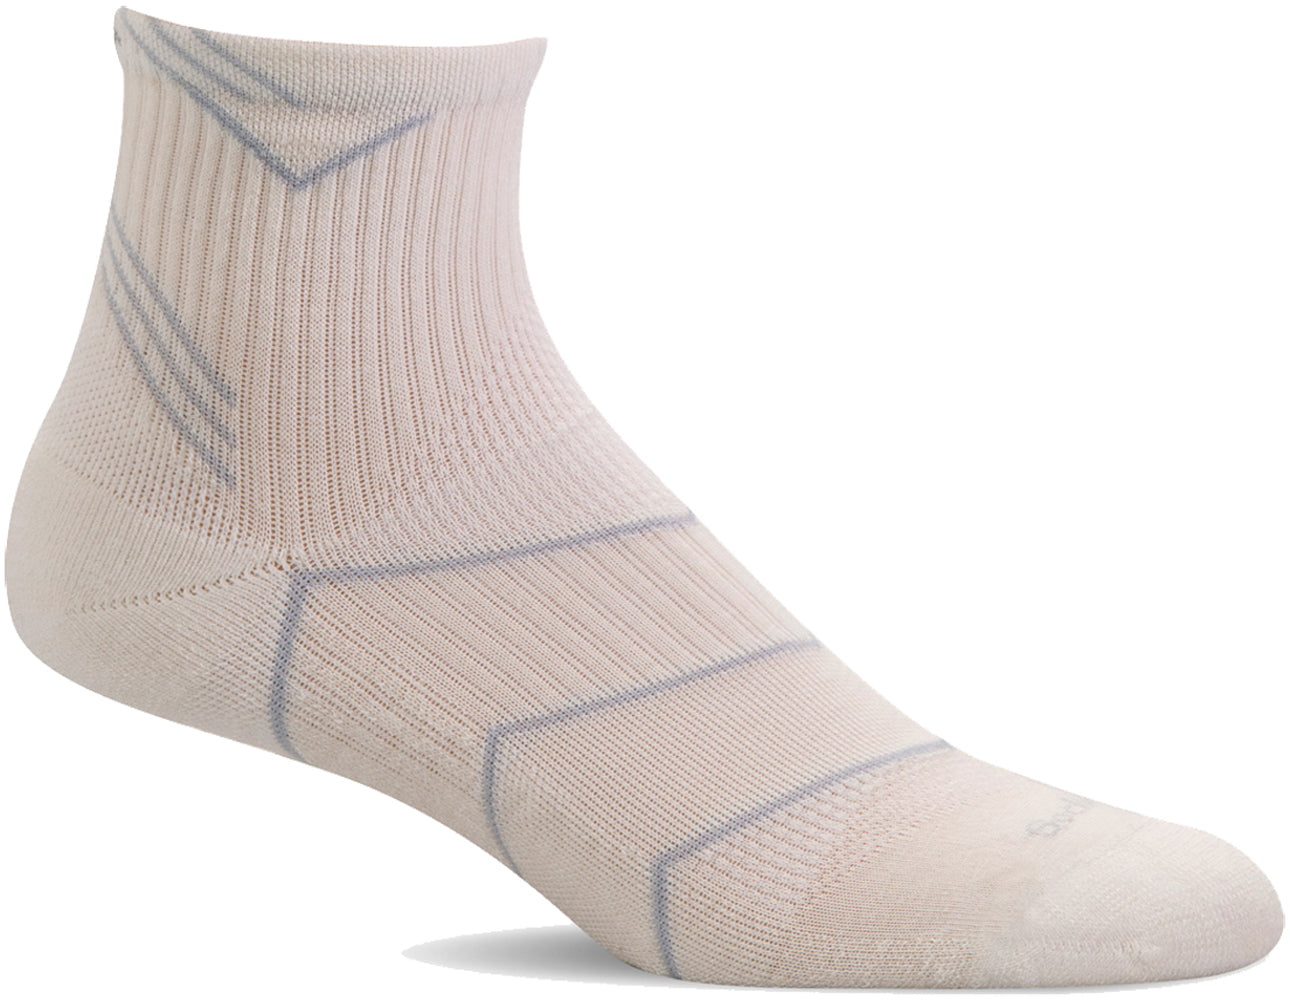 Sockwell Women's Incline Quarter Sock in Natural/Black color from the side